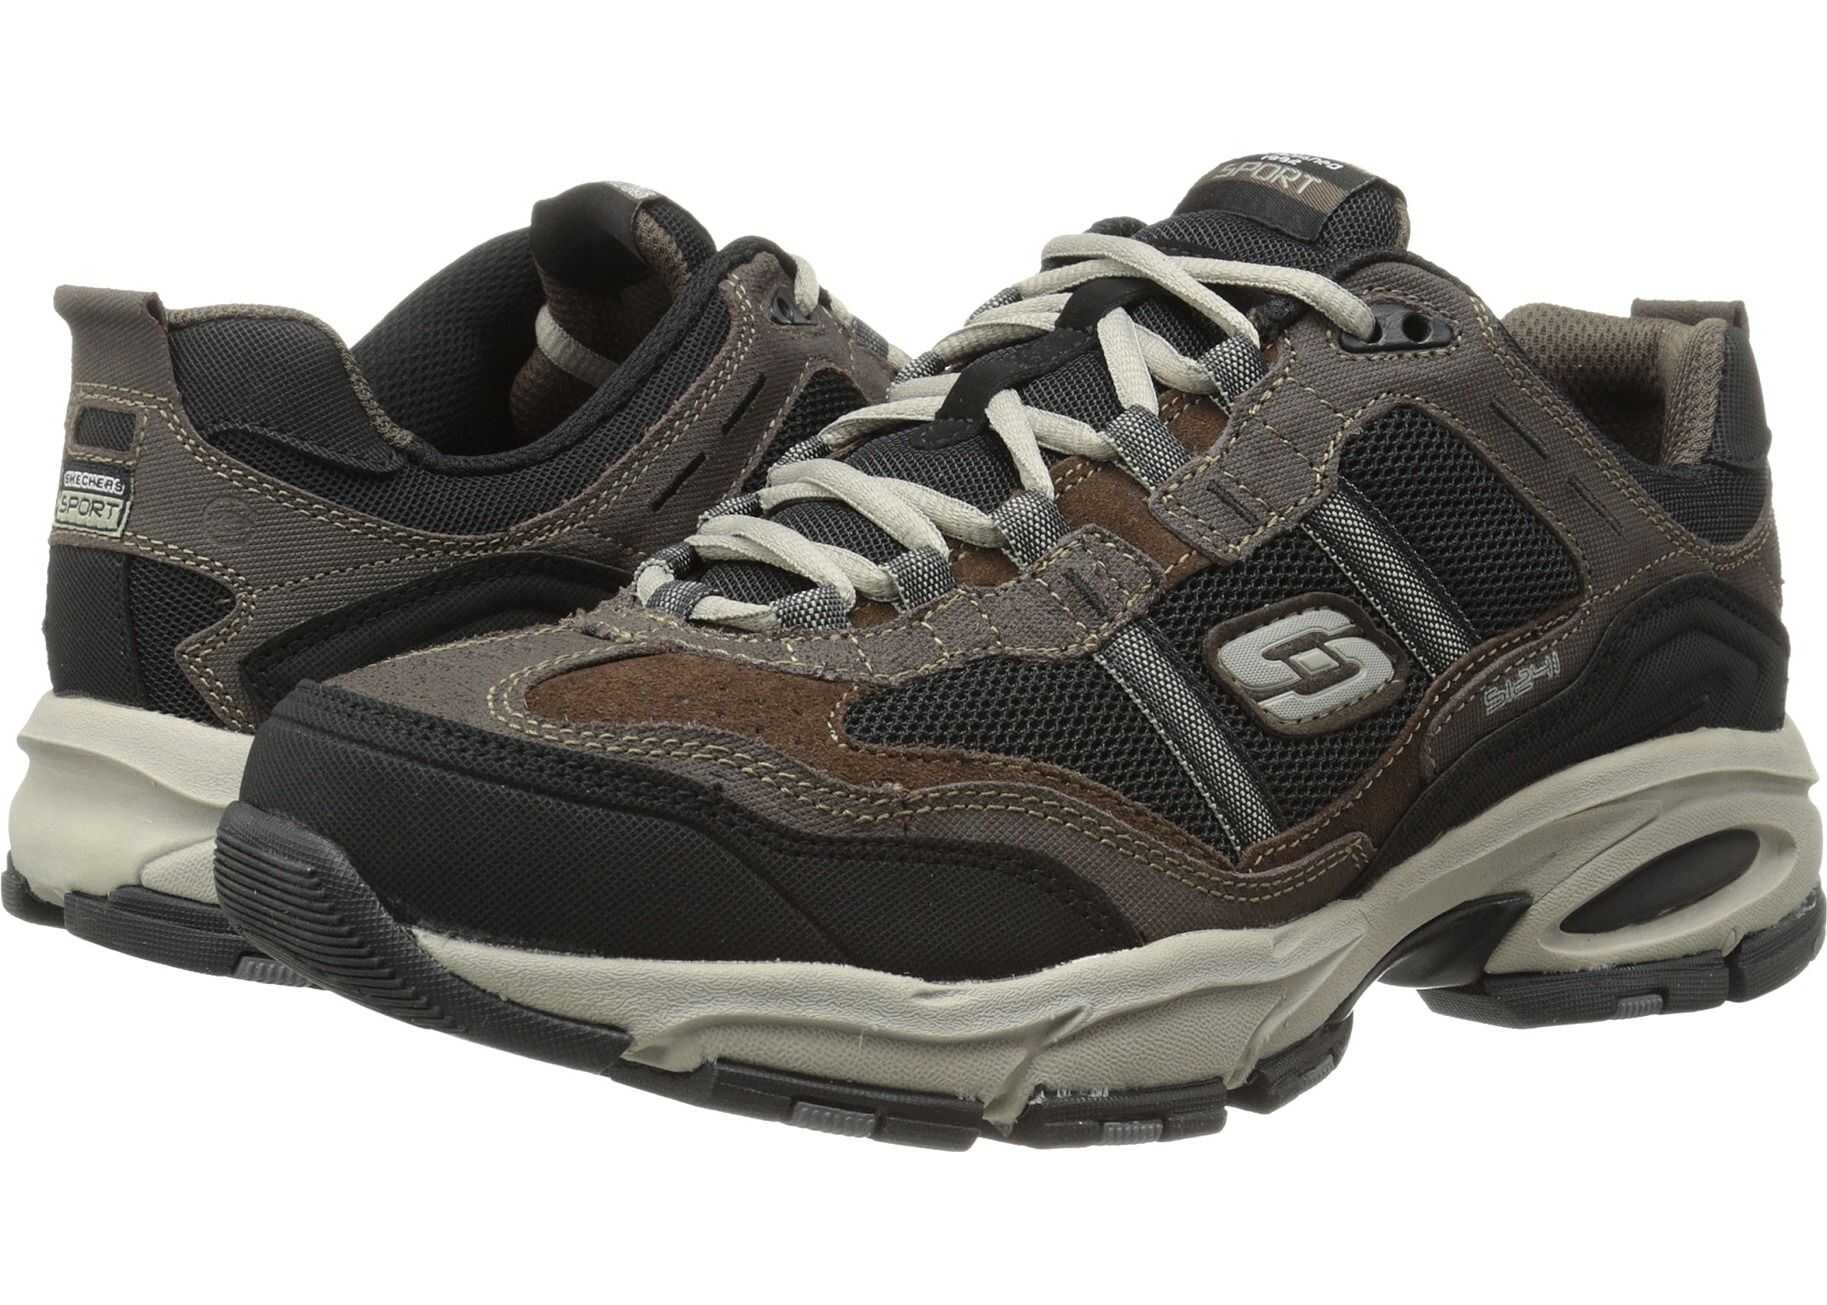 SKECHERS Vigor 2.0 Trait Brown/Black